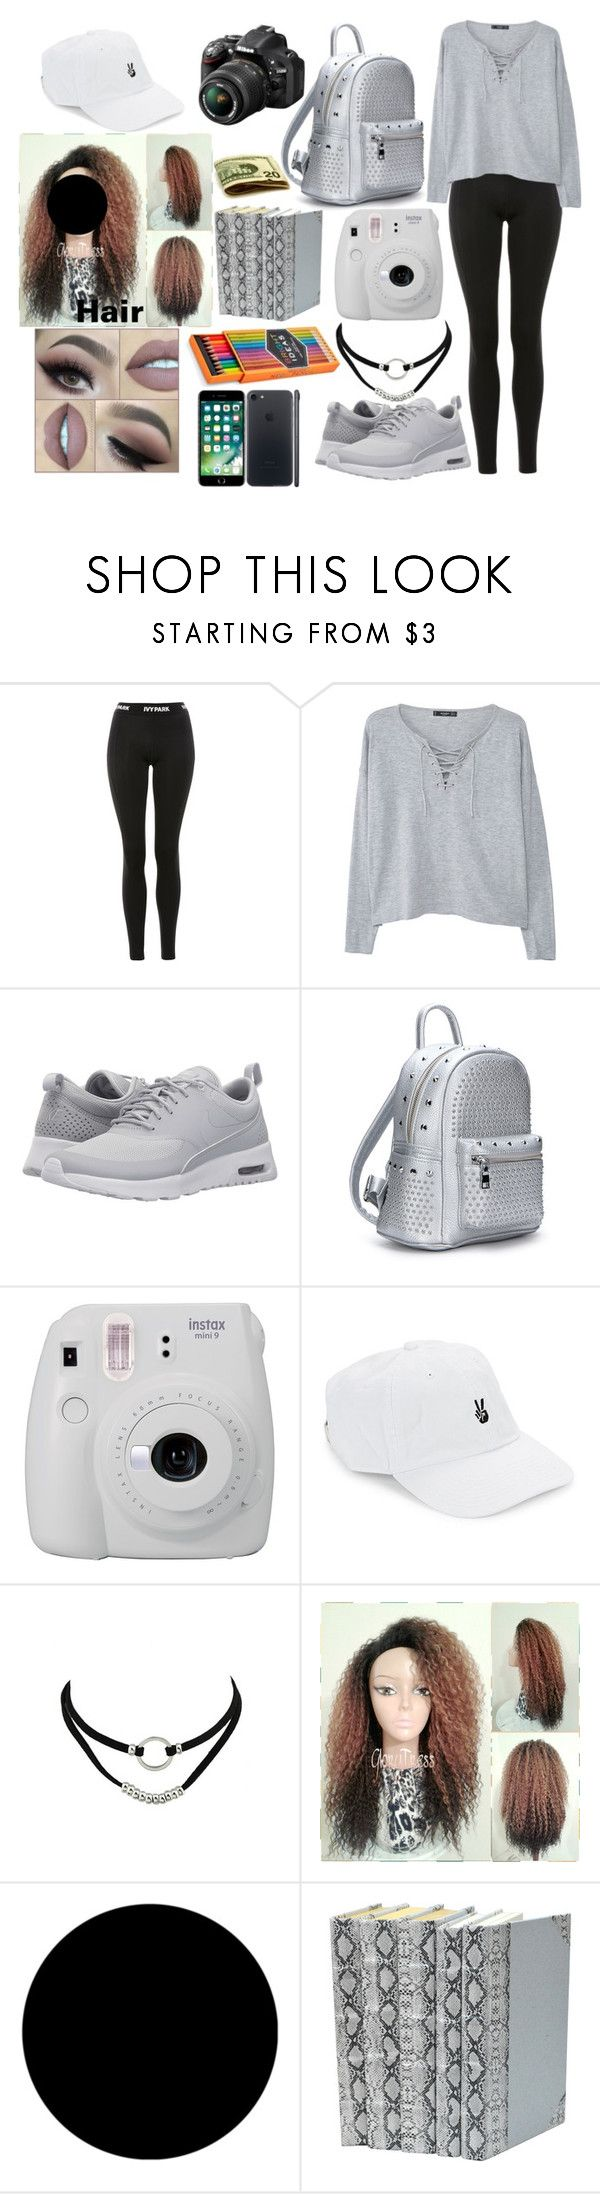 """Eva's day"" by autumnkaton ❤ liked on Polyvore featuring Topshop, MANGO, NIKE, Fujifilm, Nikon, Body Rags, Wall Pops! and FOSSIL"